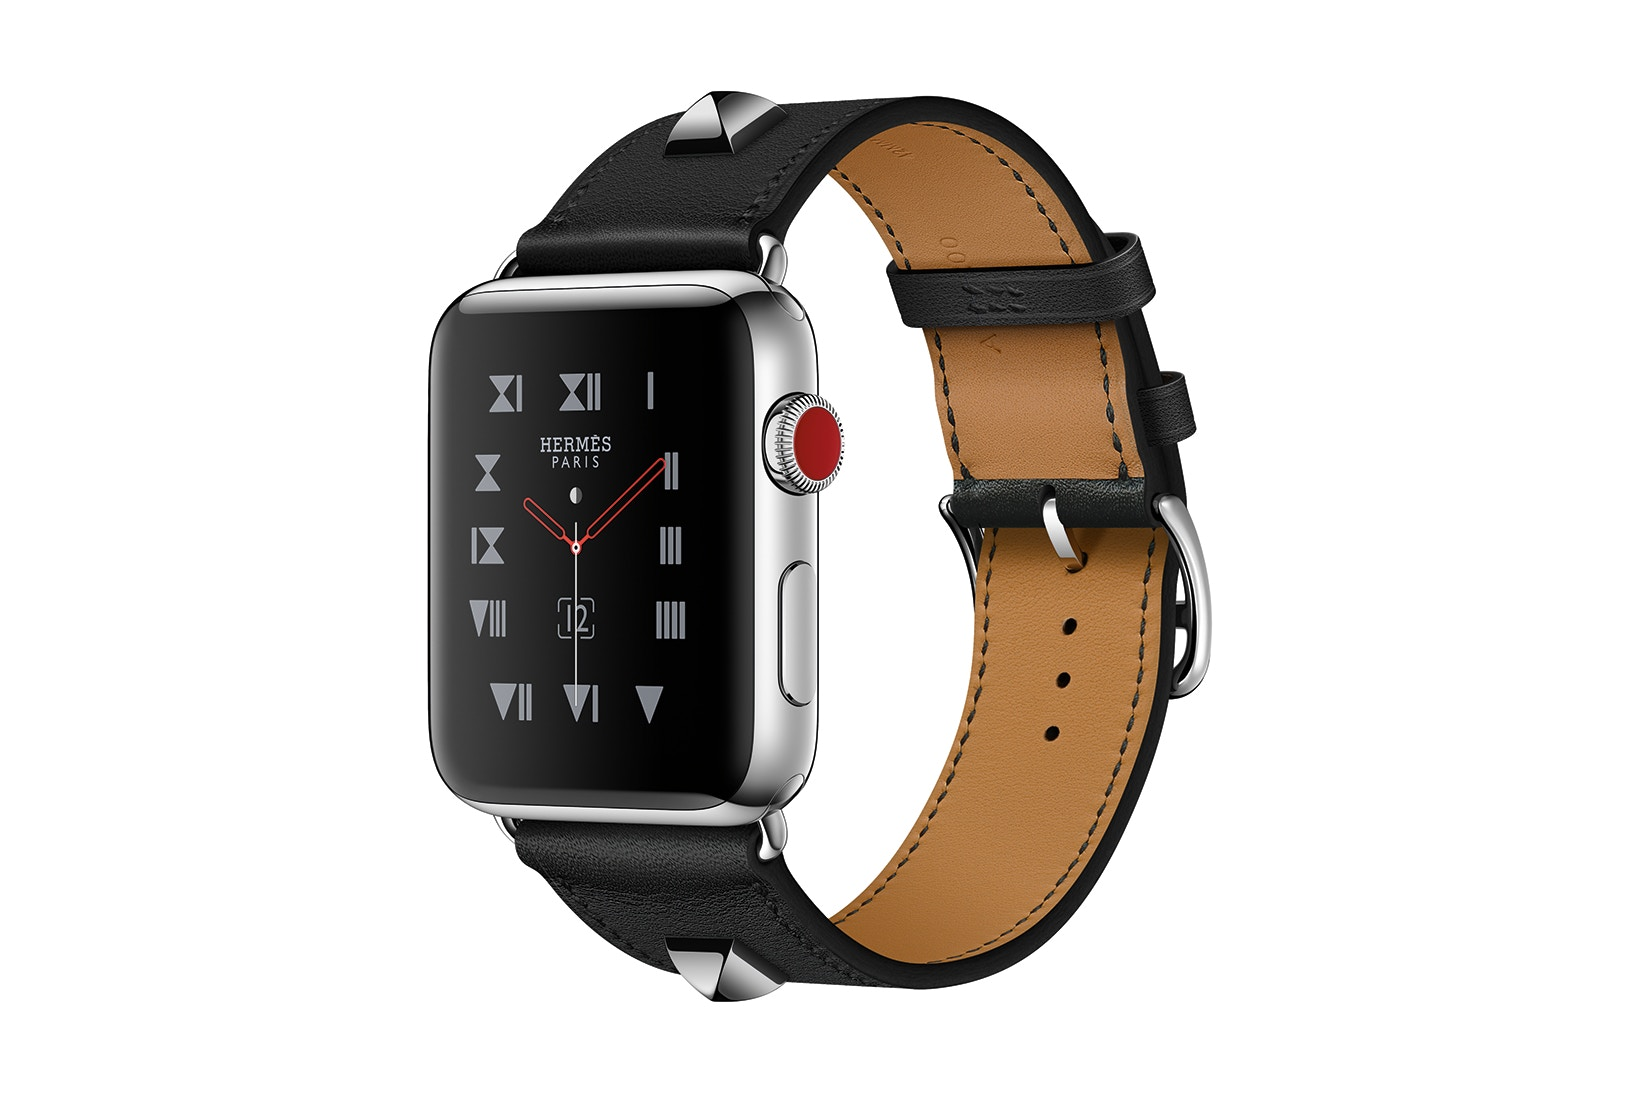 Apple Watch Series 3 Hermès